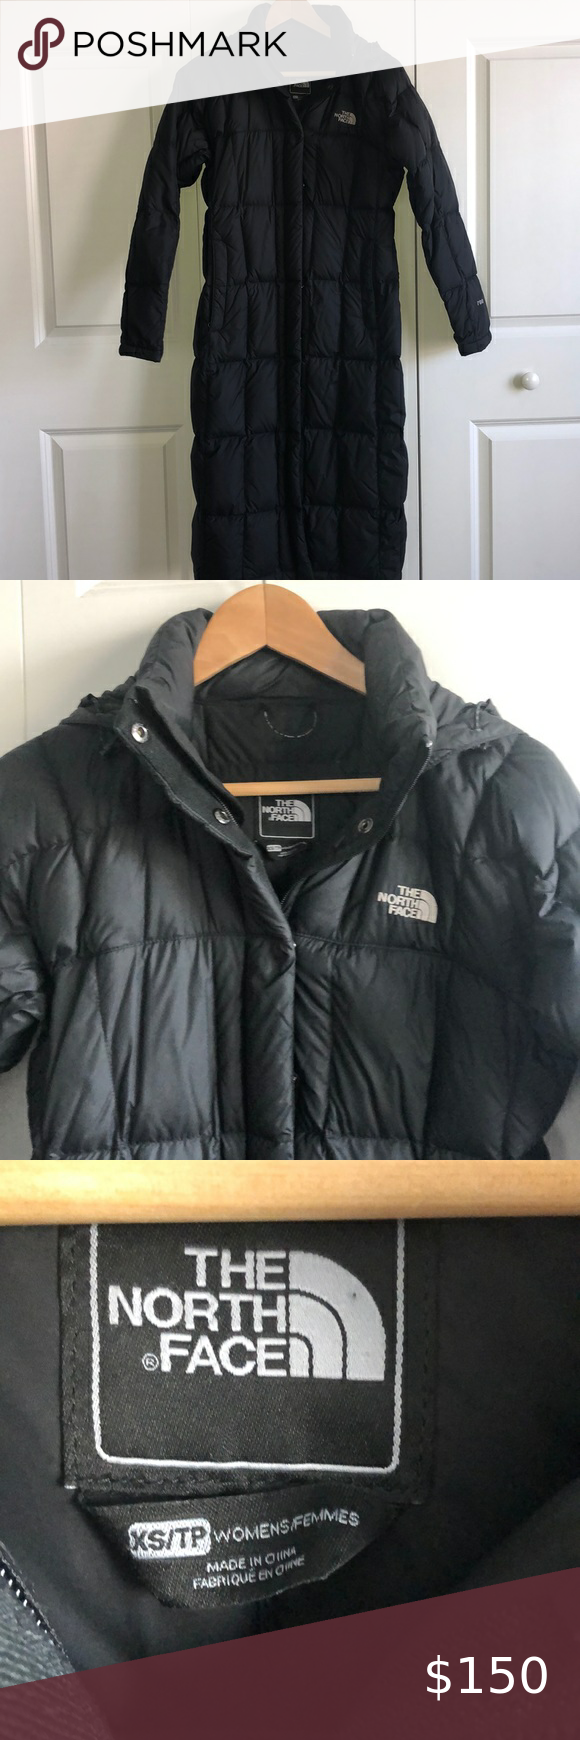 North Face Down Coat Down Coat North Face Jacket The North Face [ 1740 x 580 Pixel ]